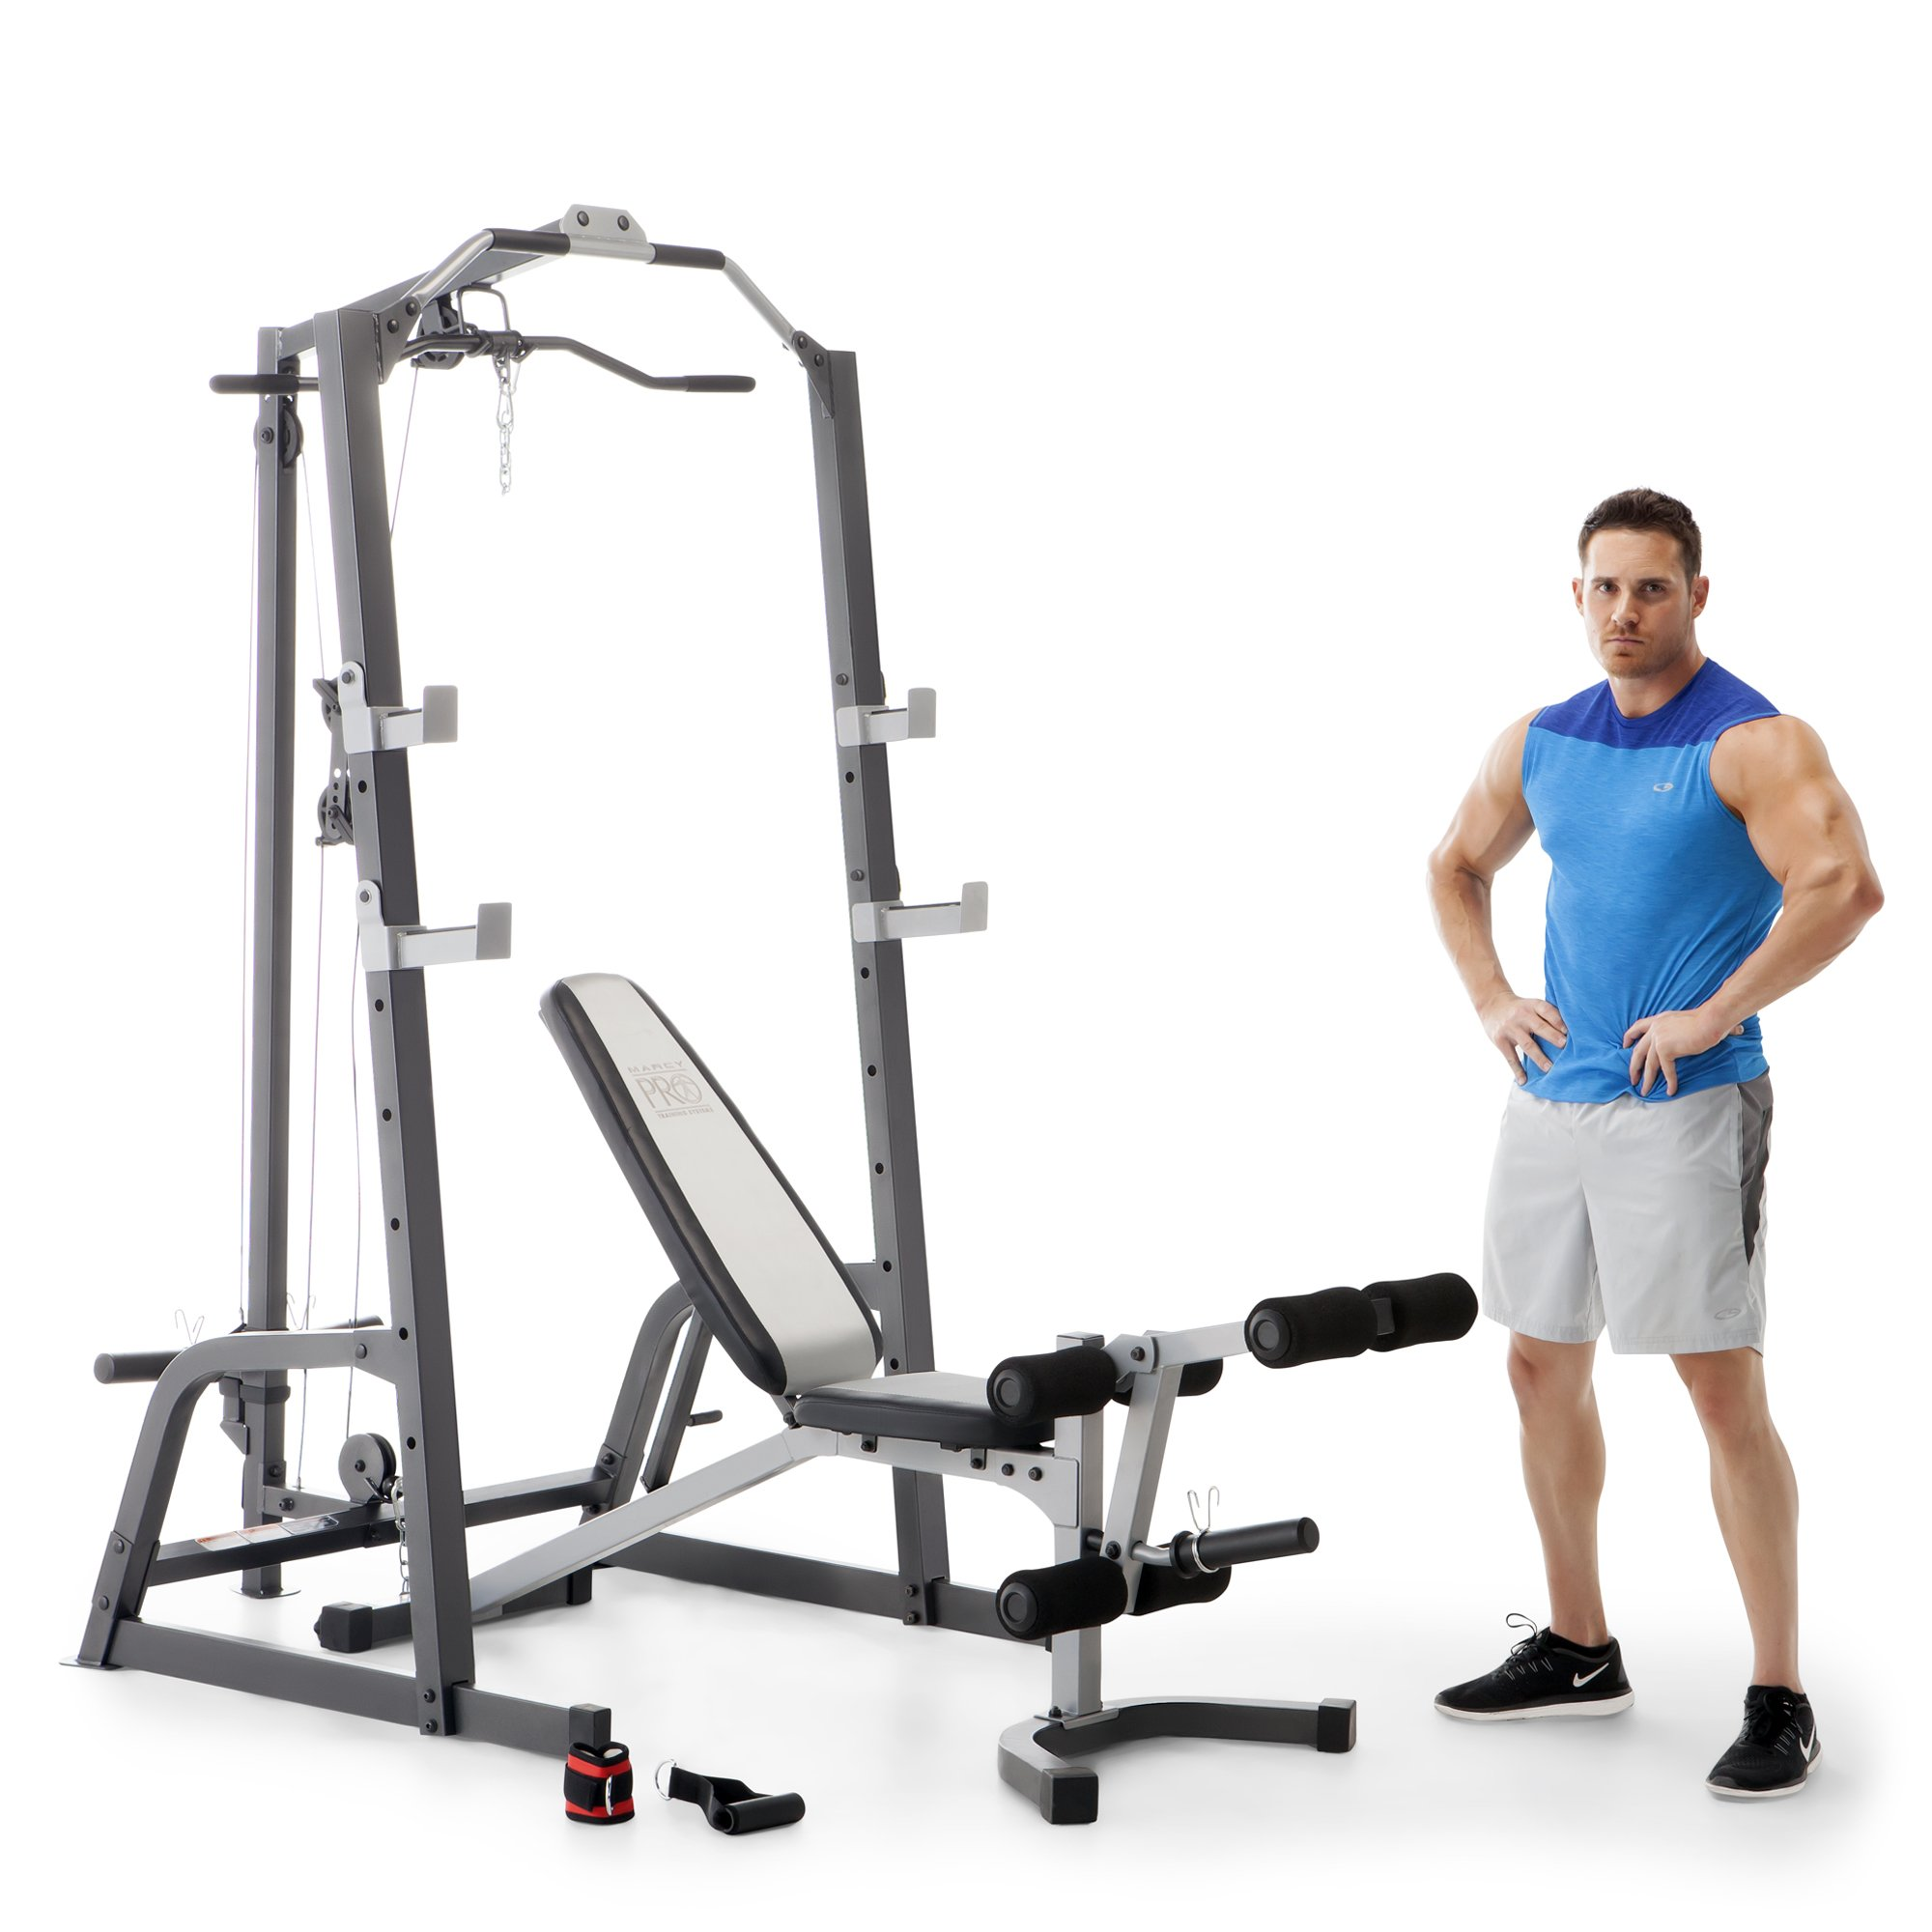 Marcy Home Gym Fitness Deluxe Cage System Machine with Weight Lifting Bench by Marcy Fitness